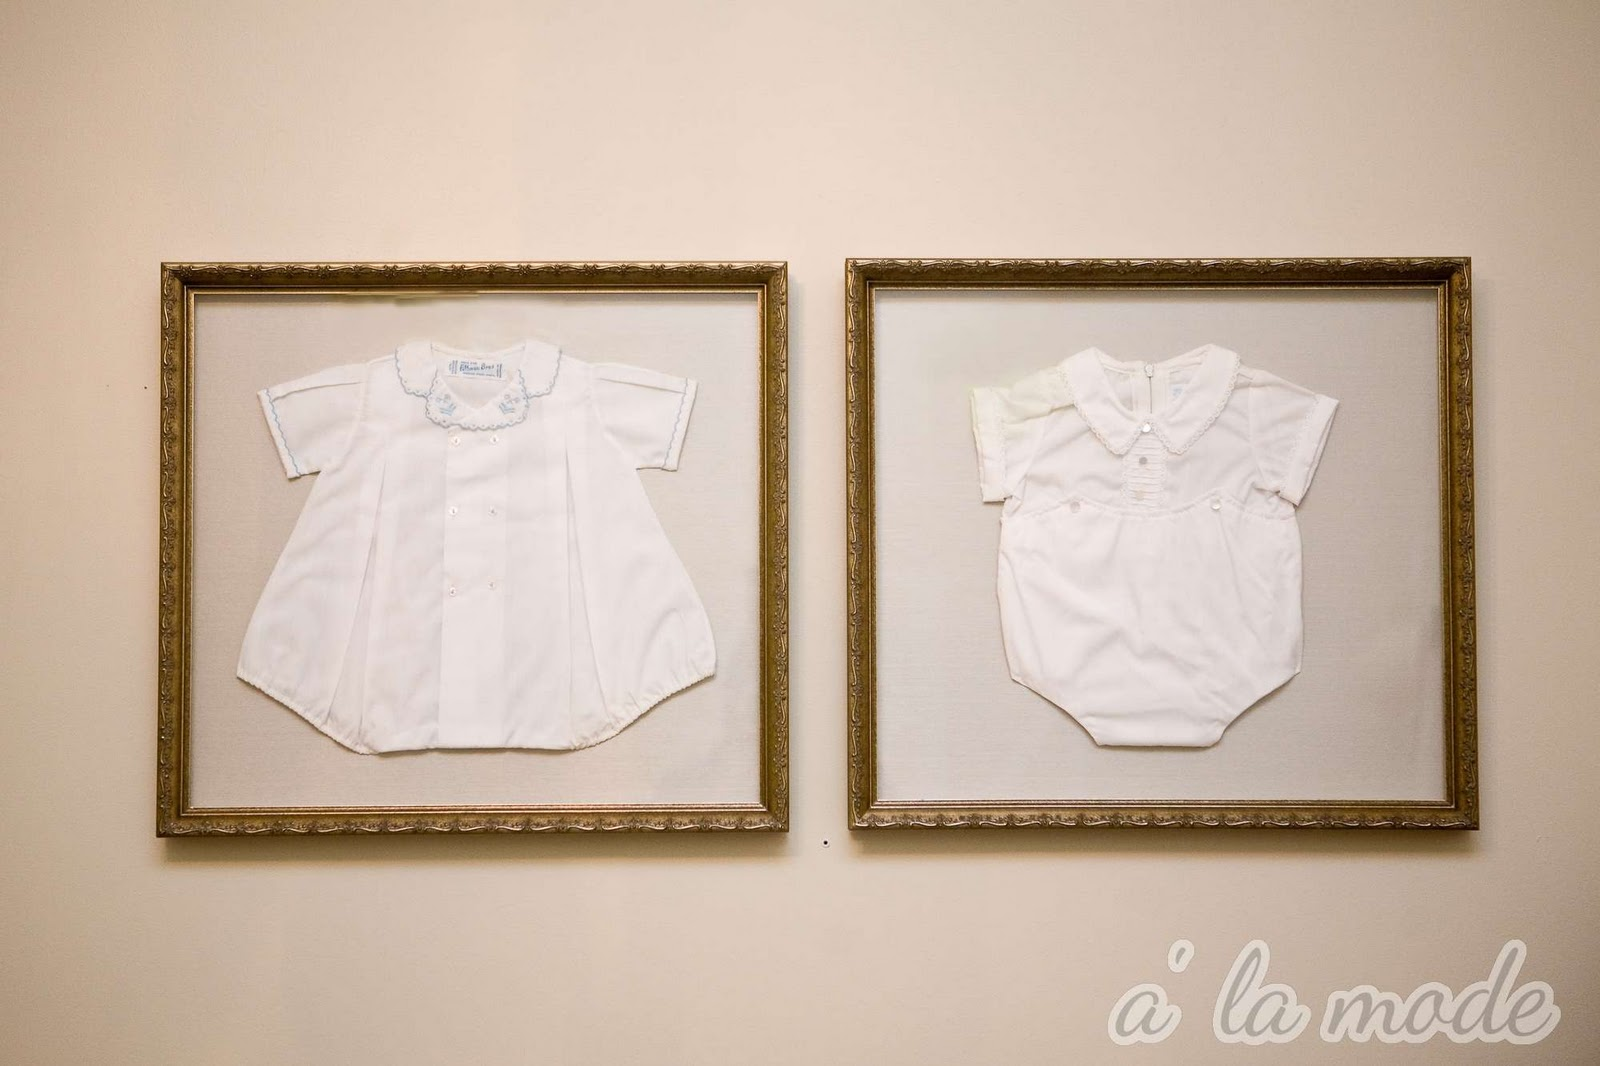 Forum on this topic: How to Frame Baby Clothes, how-to-frame-baby-clothes/